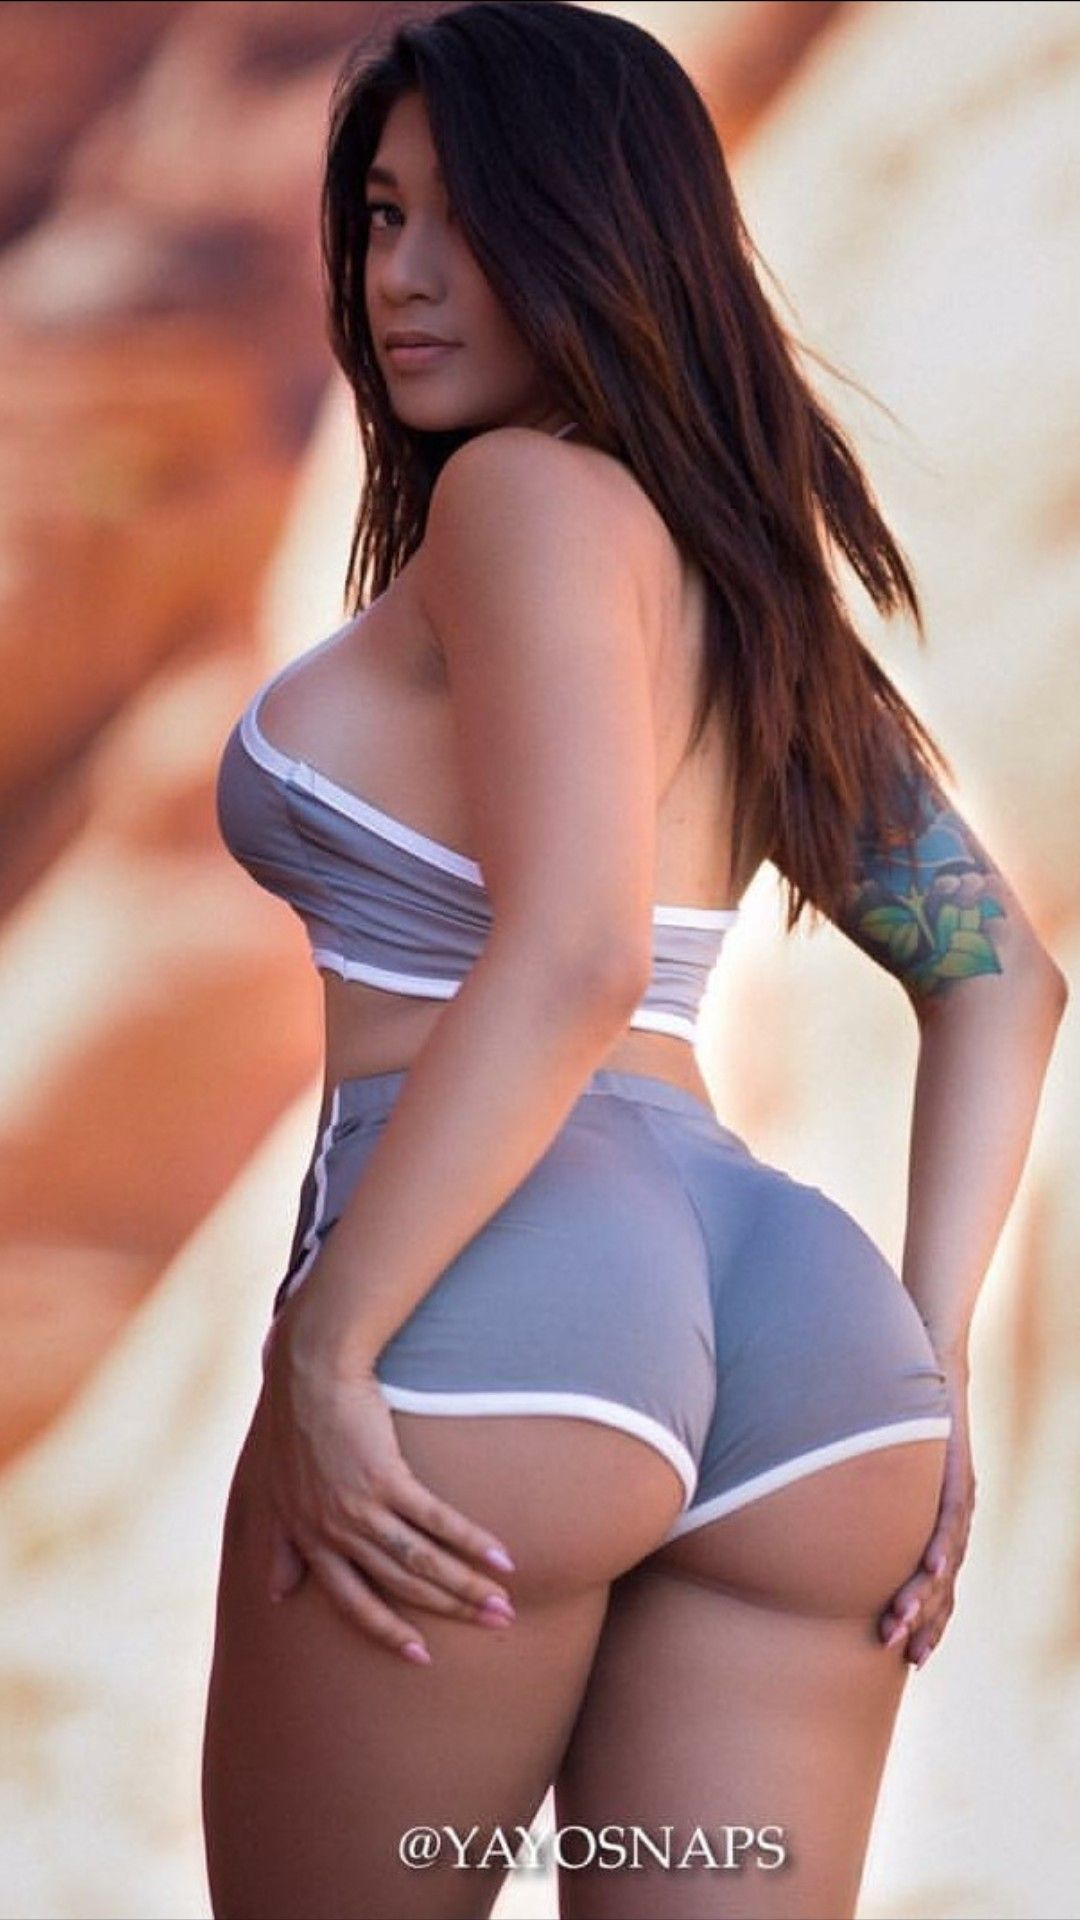 pingabriel florezmendez on mega | pinterest | curves, short